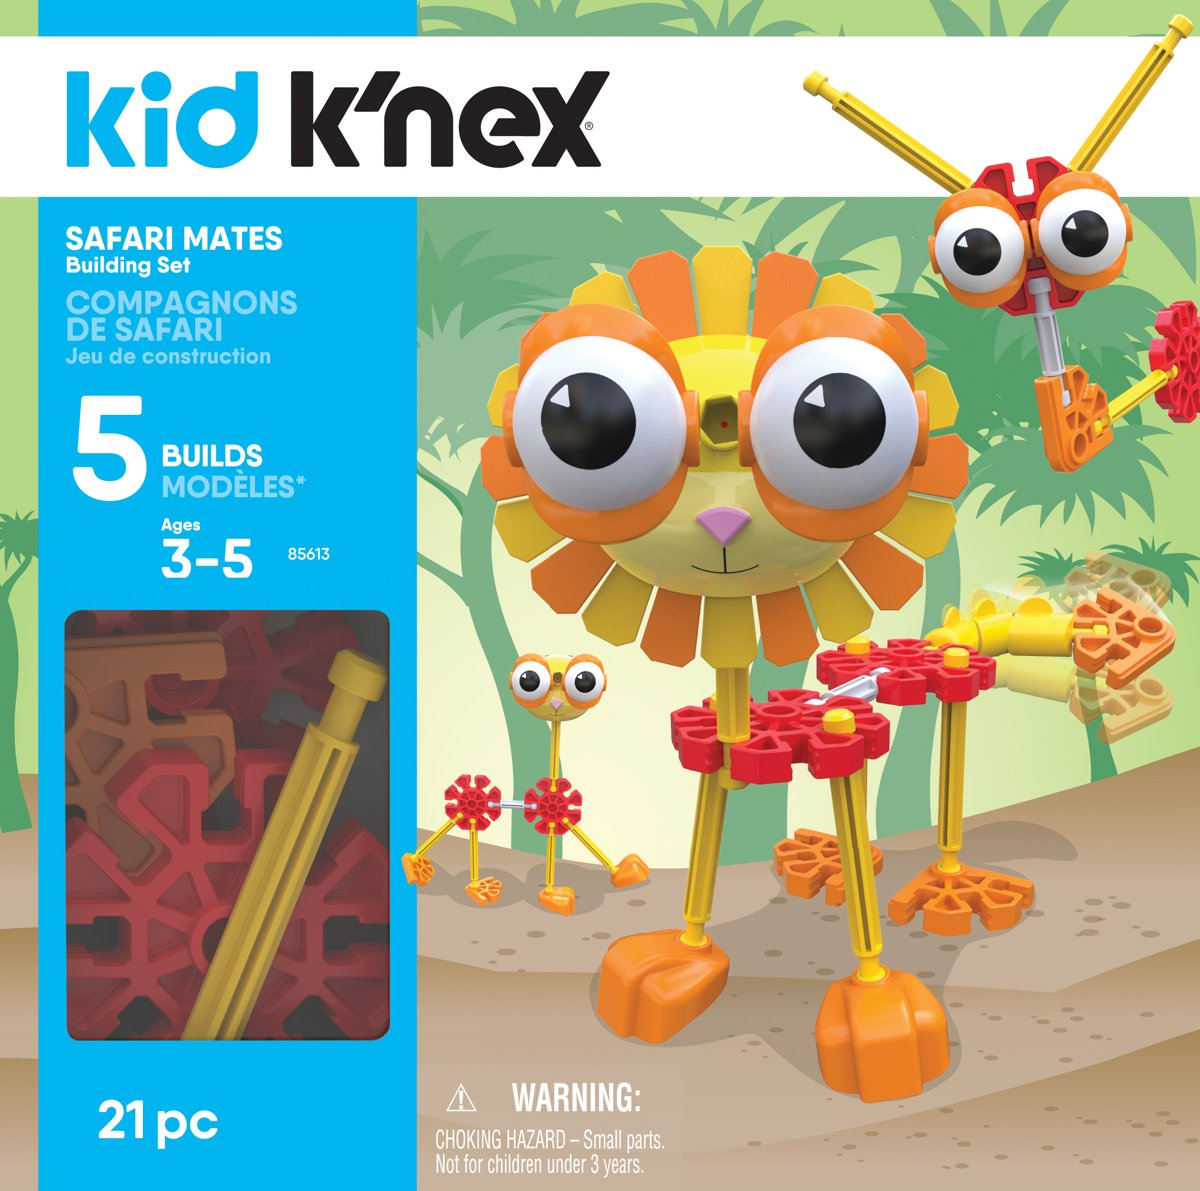 Kid Knex - Safari Mates Building Set